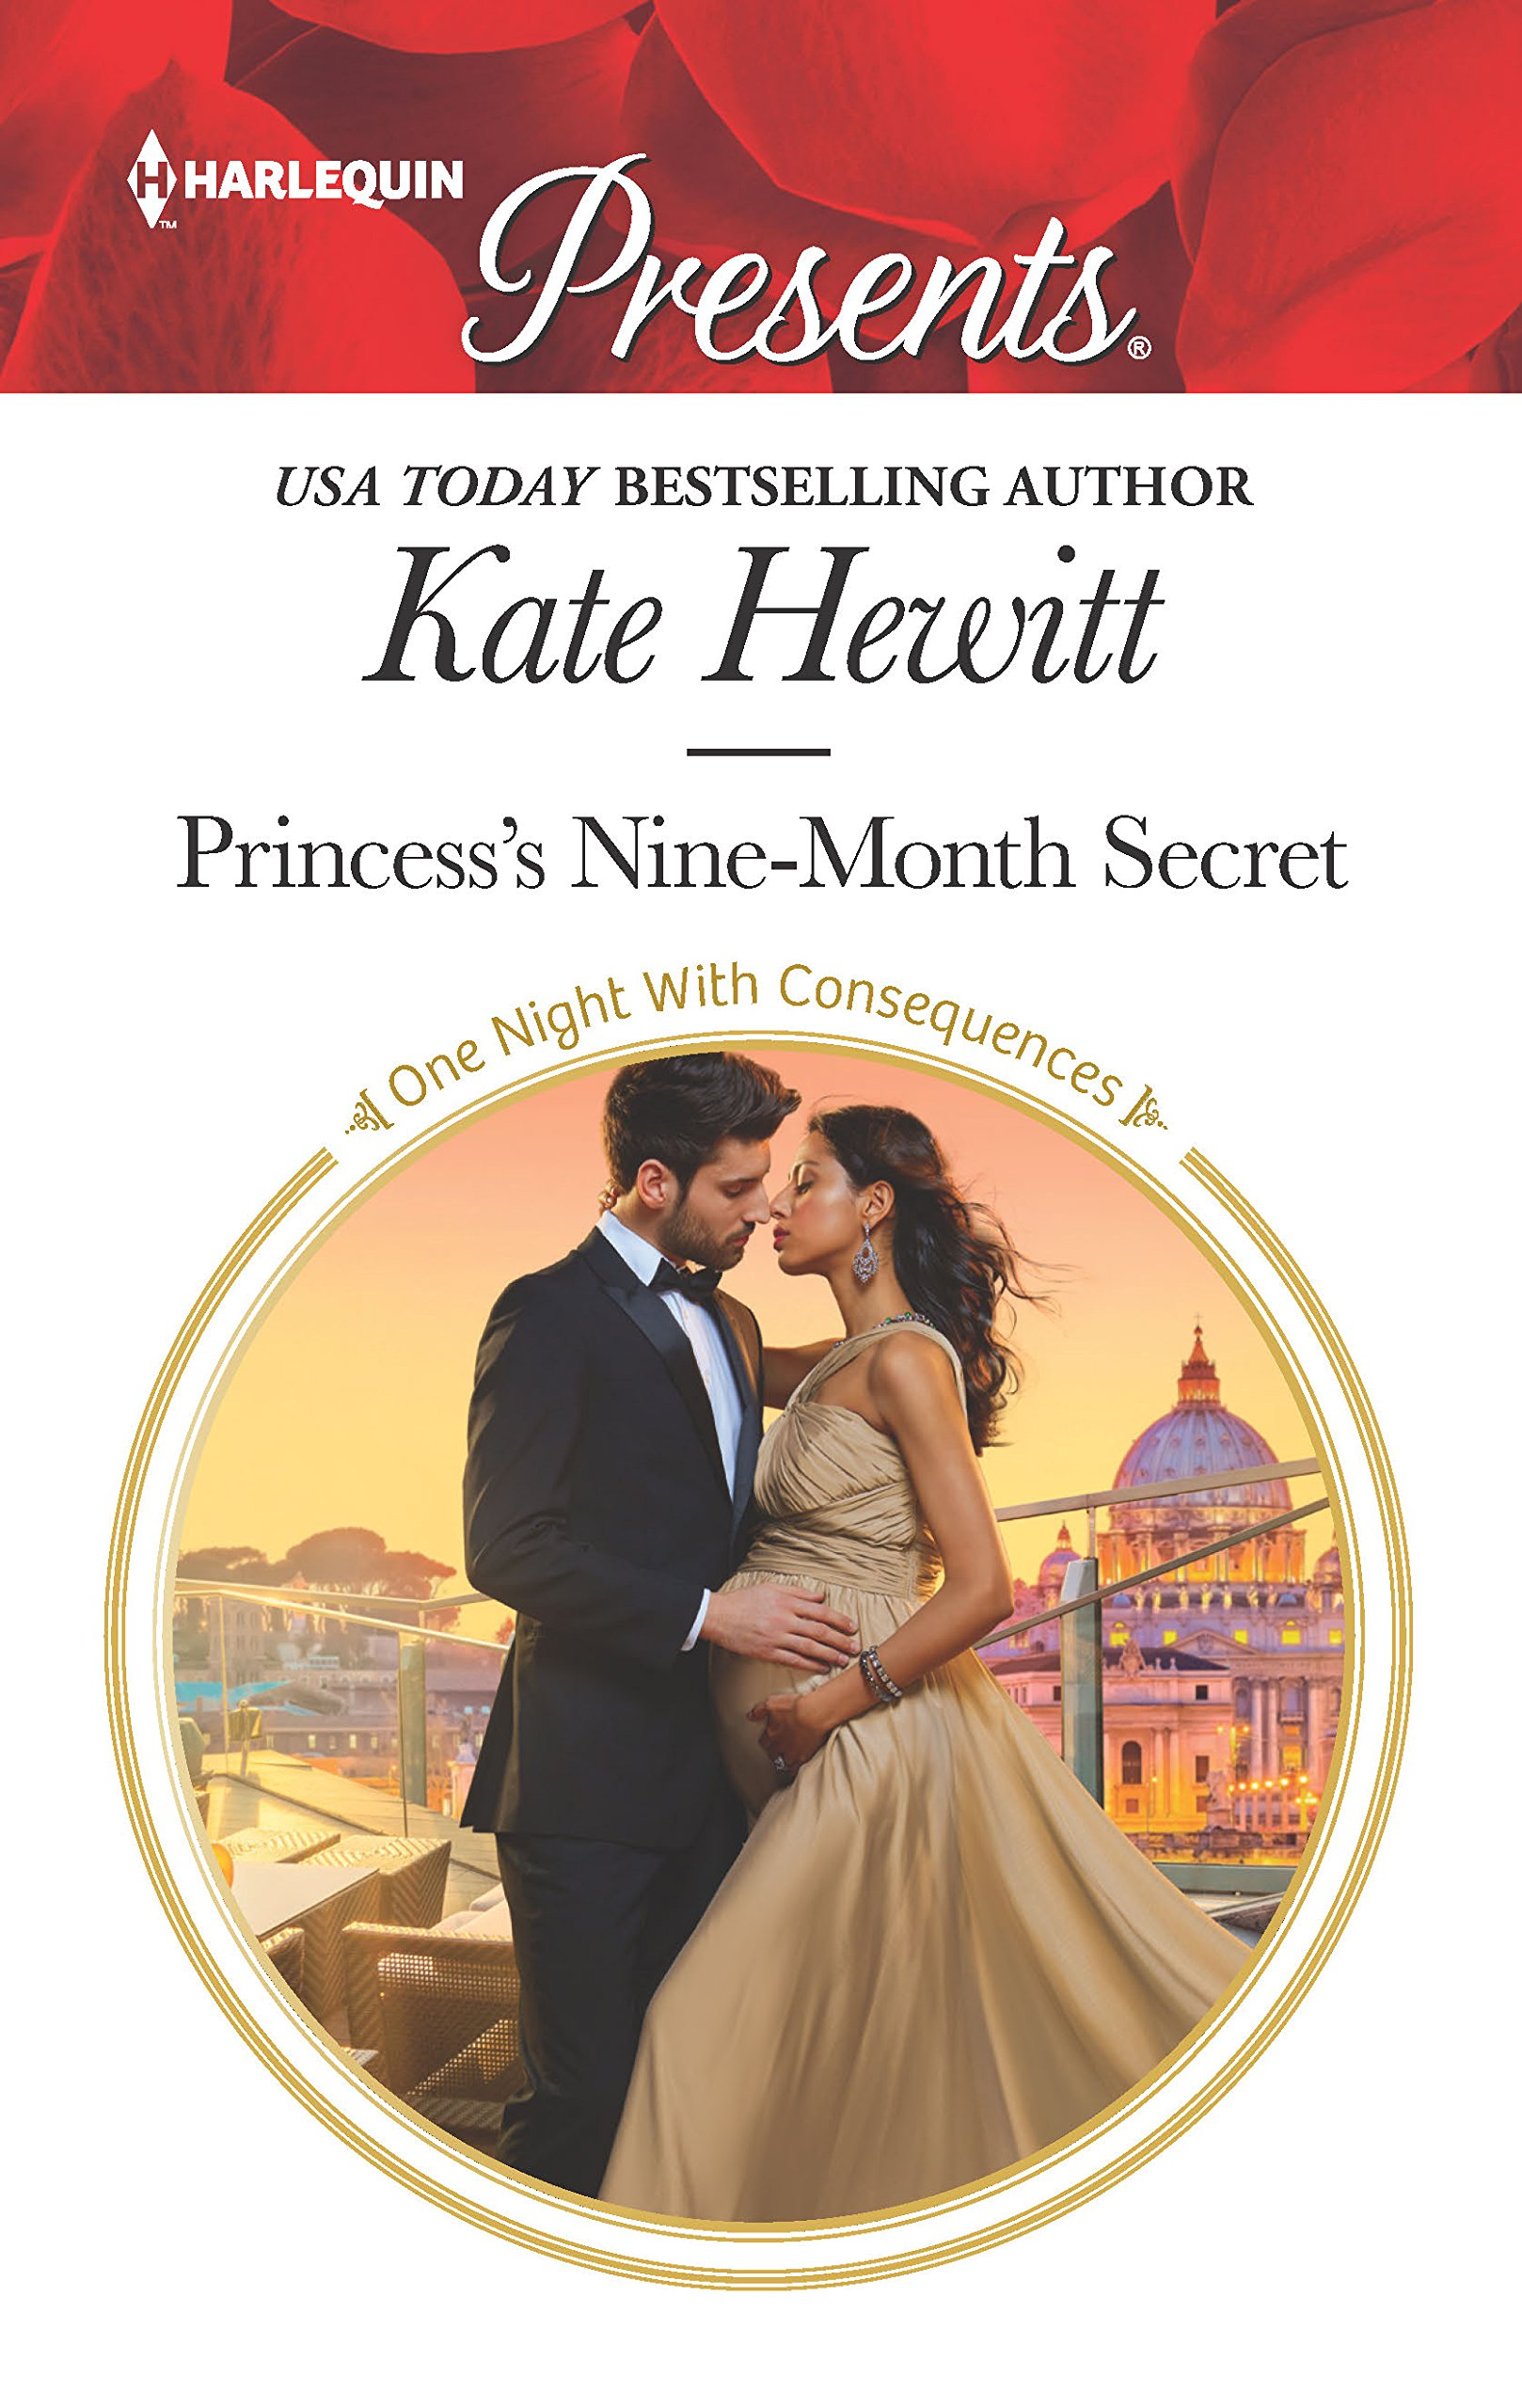 Princess's Nine-Month Secret (One Night With Consequences): Kate